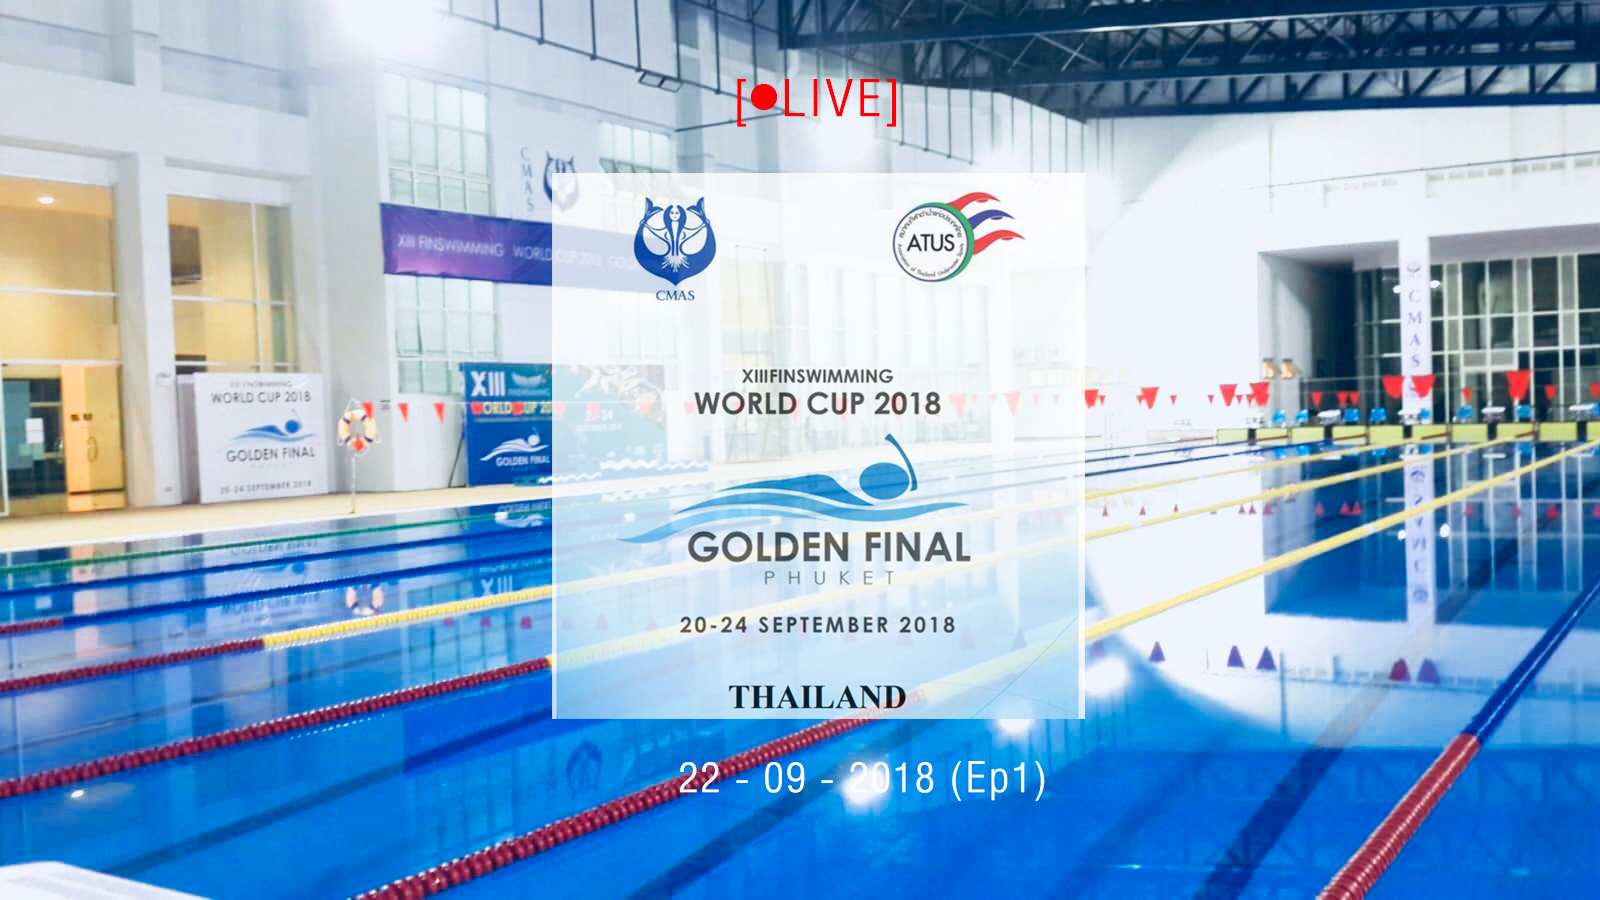 XIII FINSWIMMING WORLDCUP 2018 LIVE